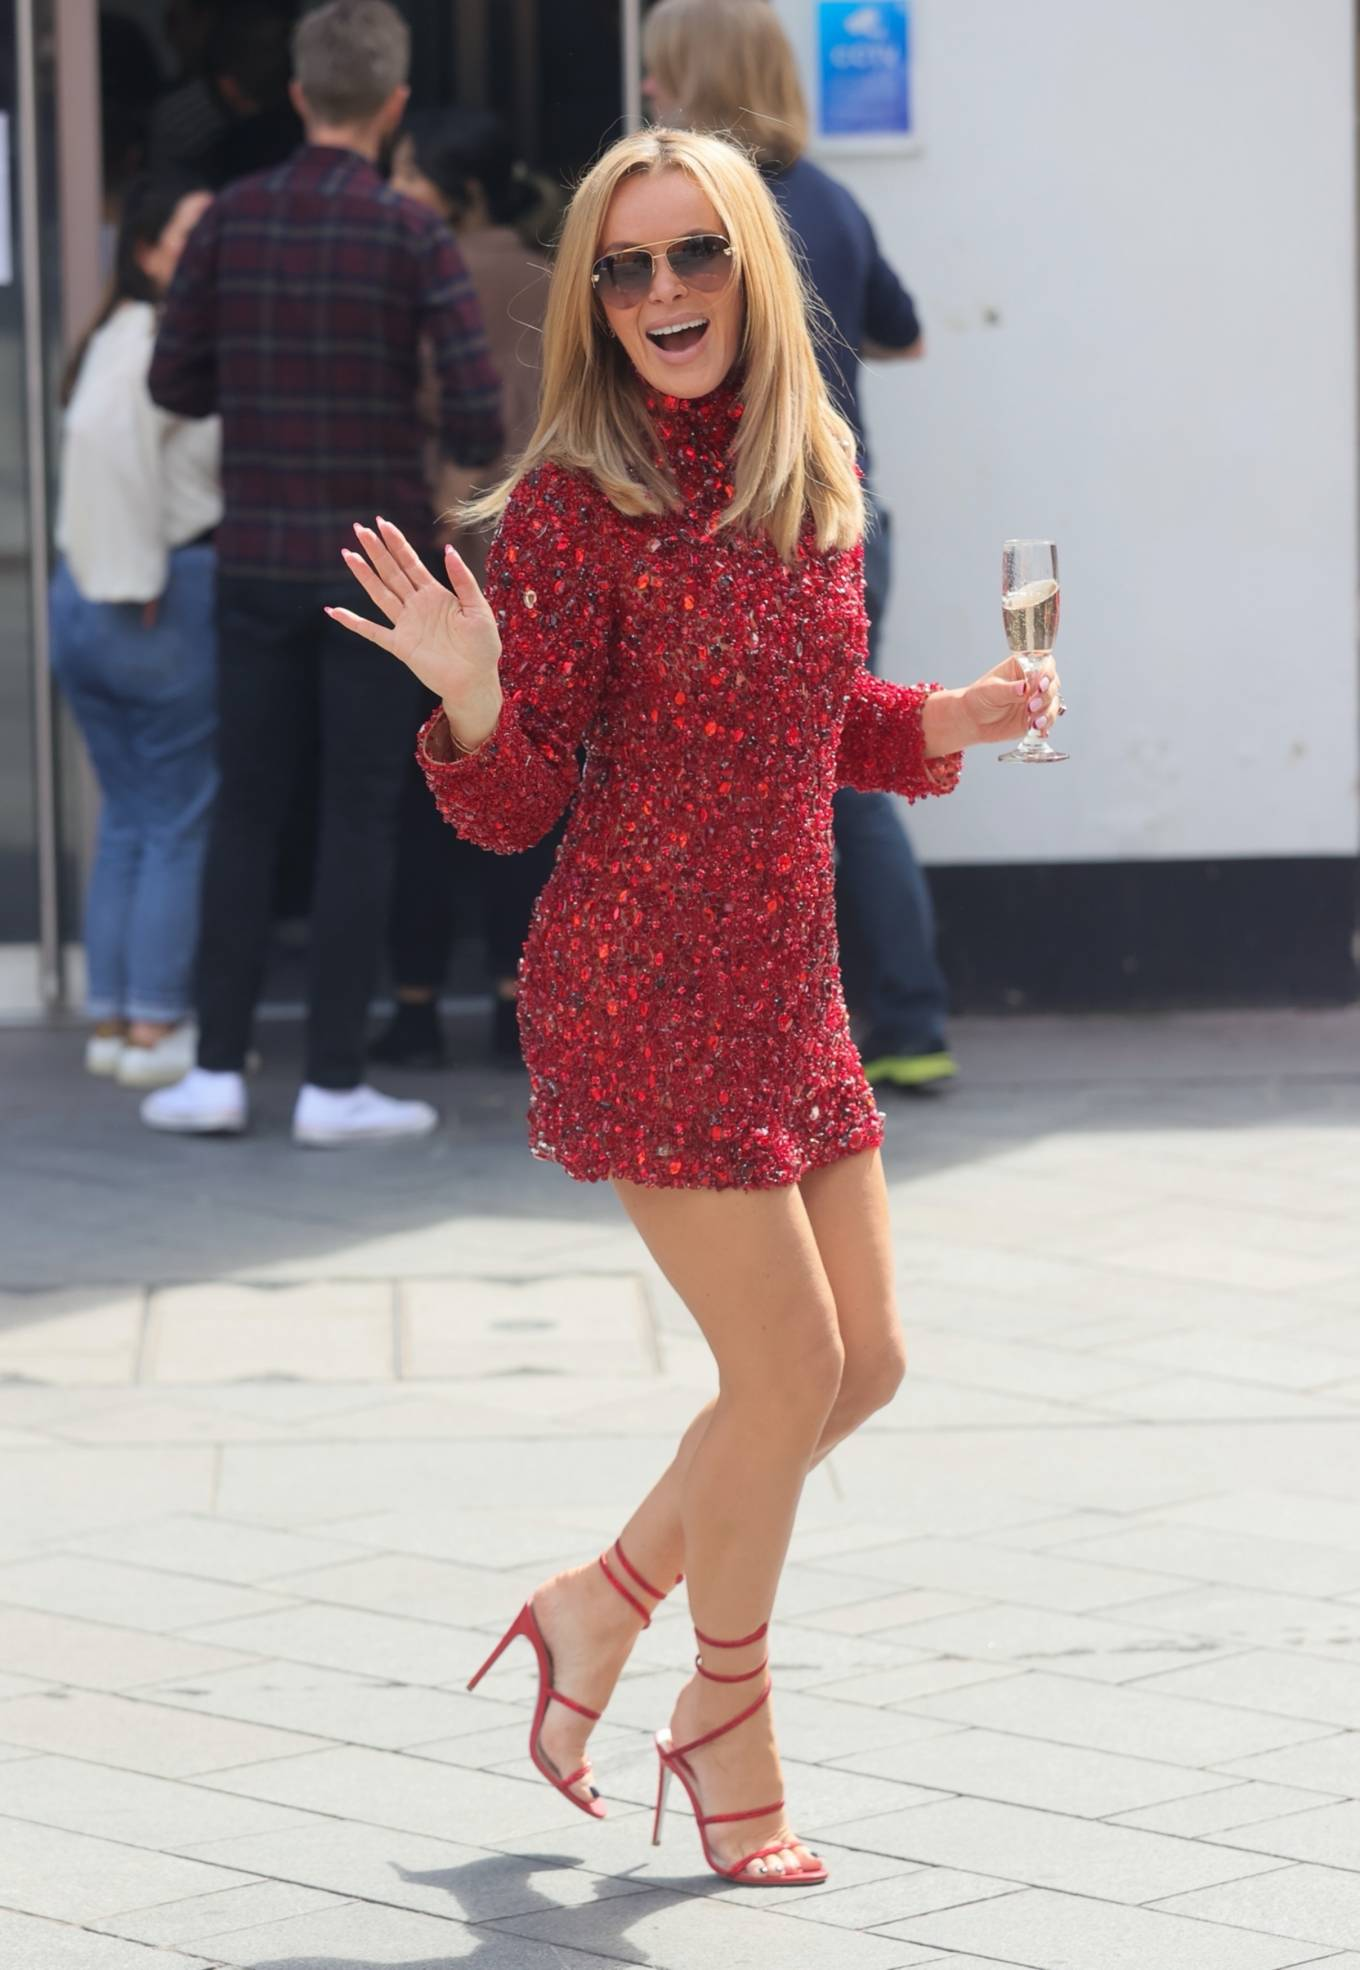 Amanda Holden - Seen in diamond dress for Hearts Make Me a Millionaire competition in London